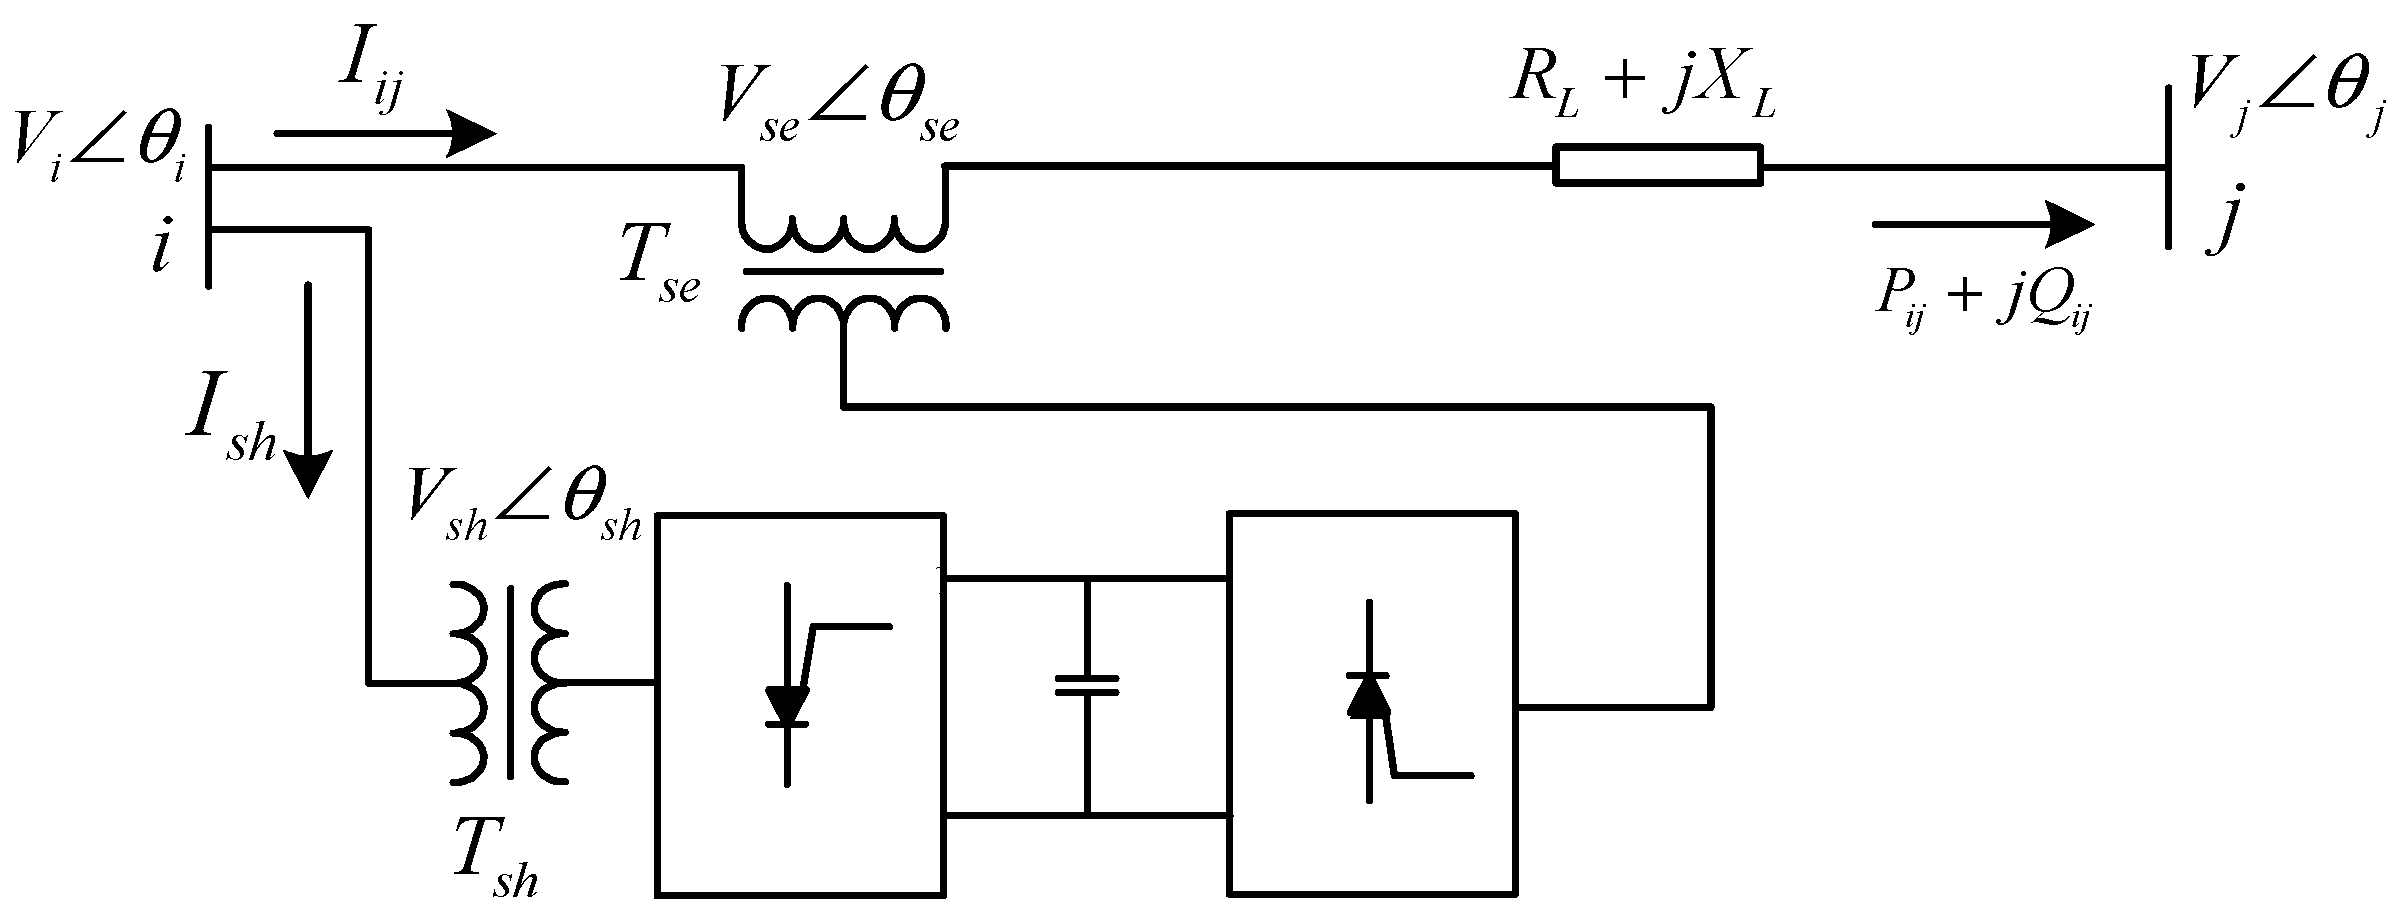 Unified Power Flow Controller Circuit Diagram Library Of Wiring